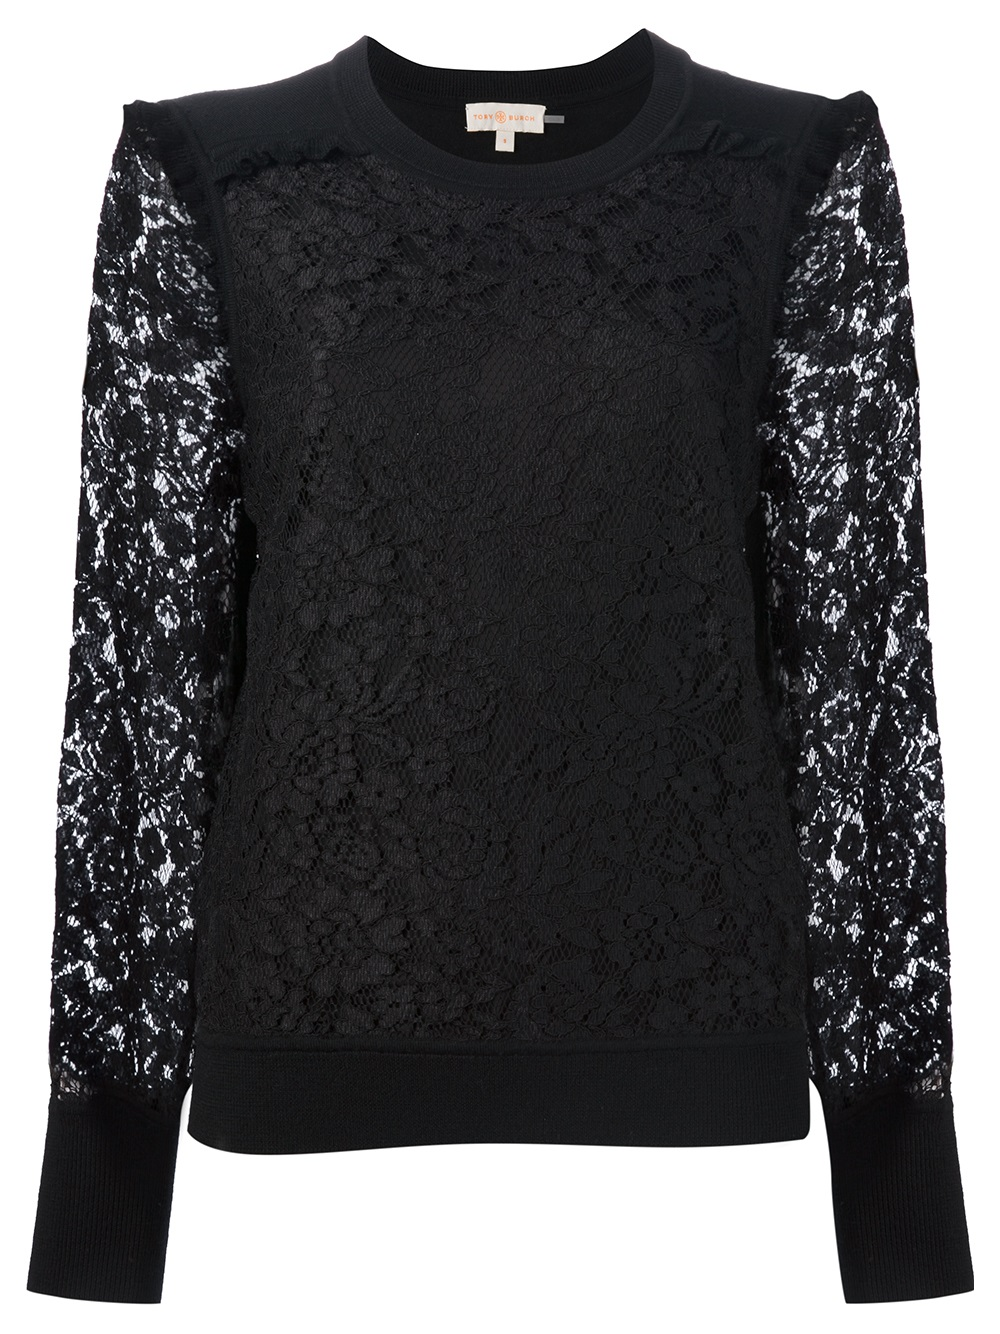 Lyst tory burch tory burch lace top in black for Tory burch fashion island